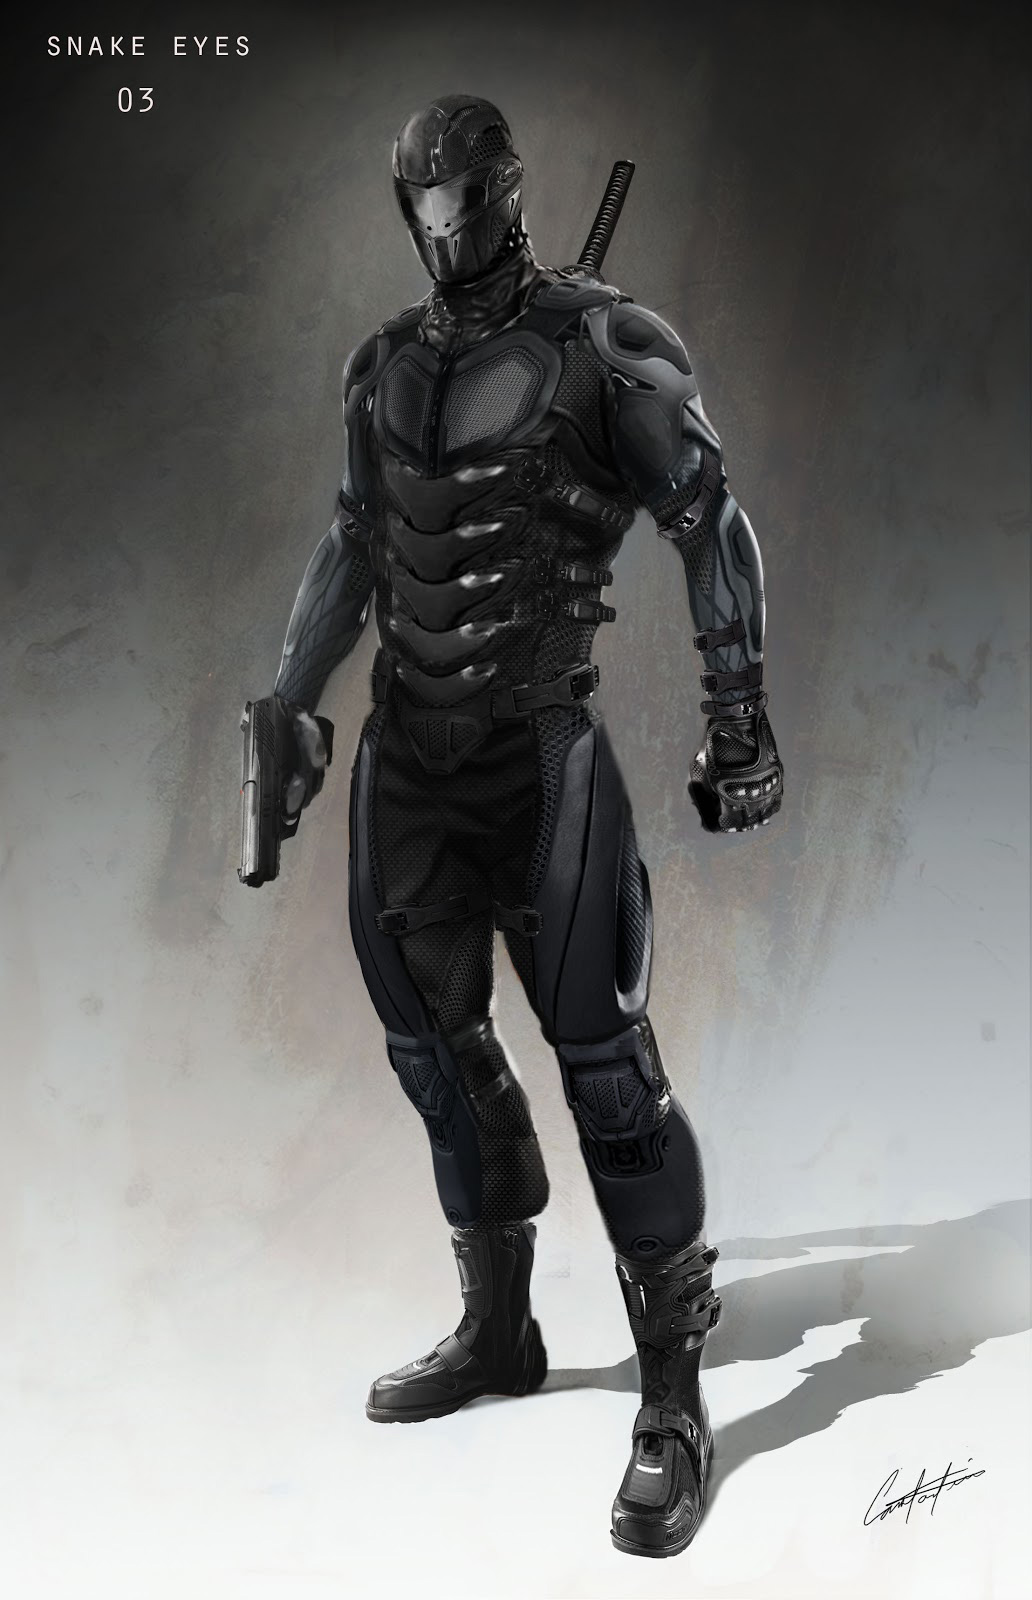 GI Joe Retaliation Concept Art And Character Designs By